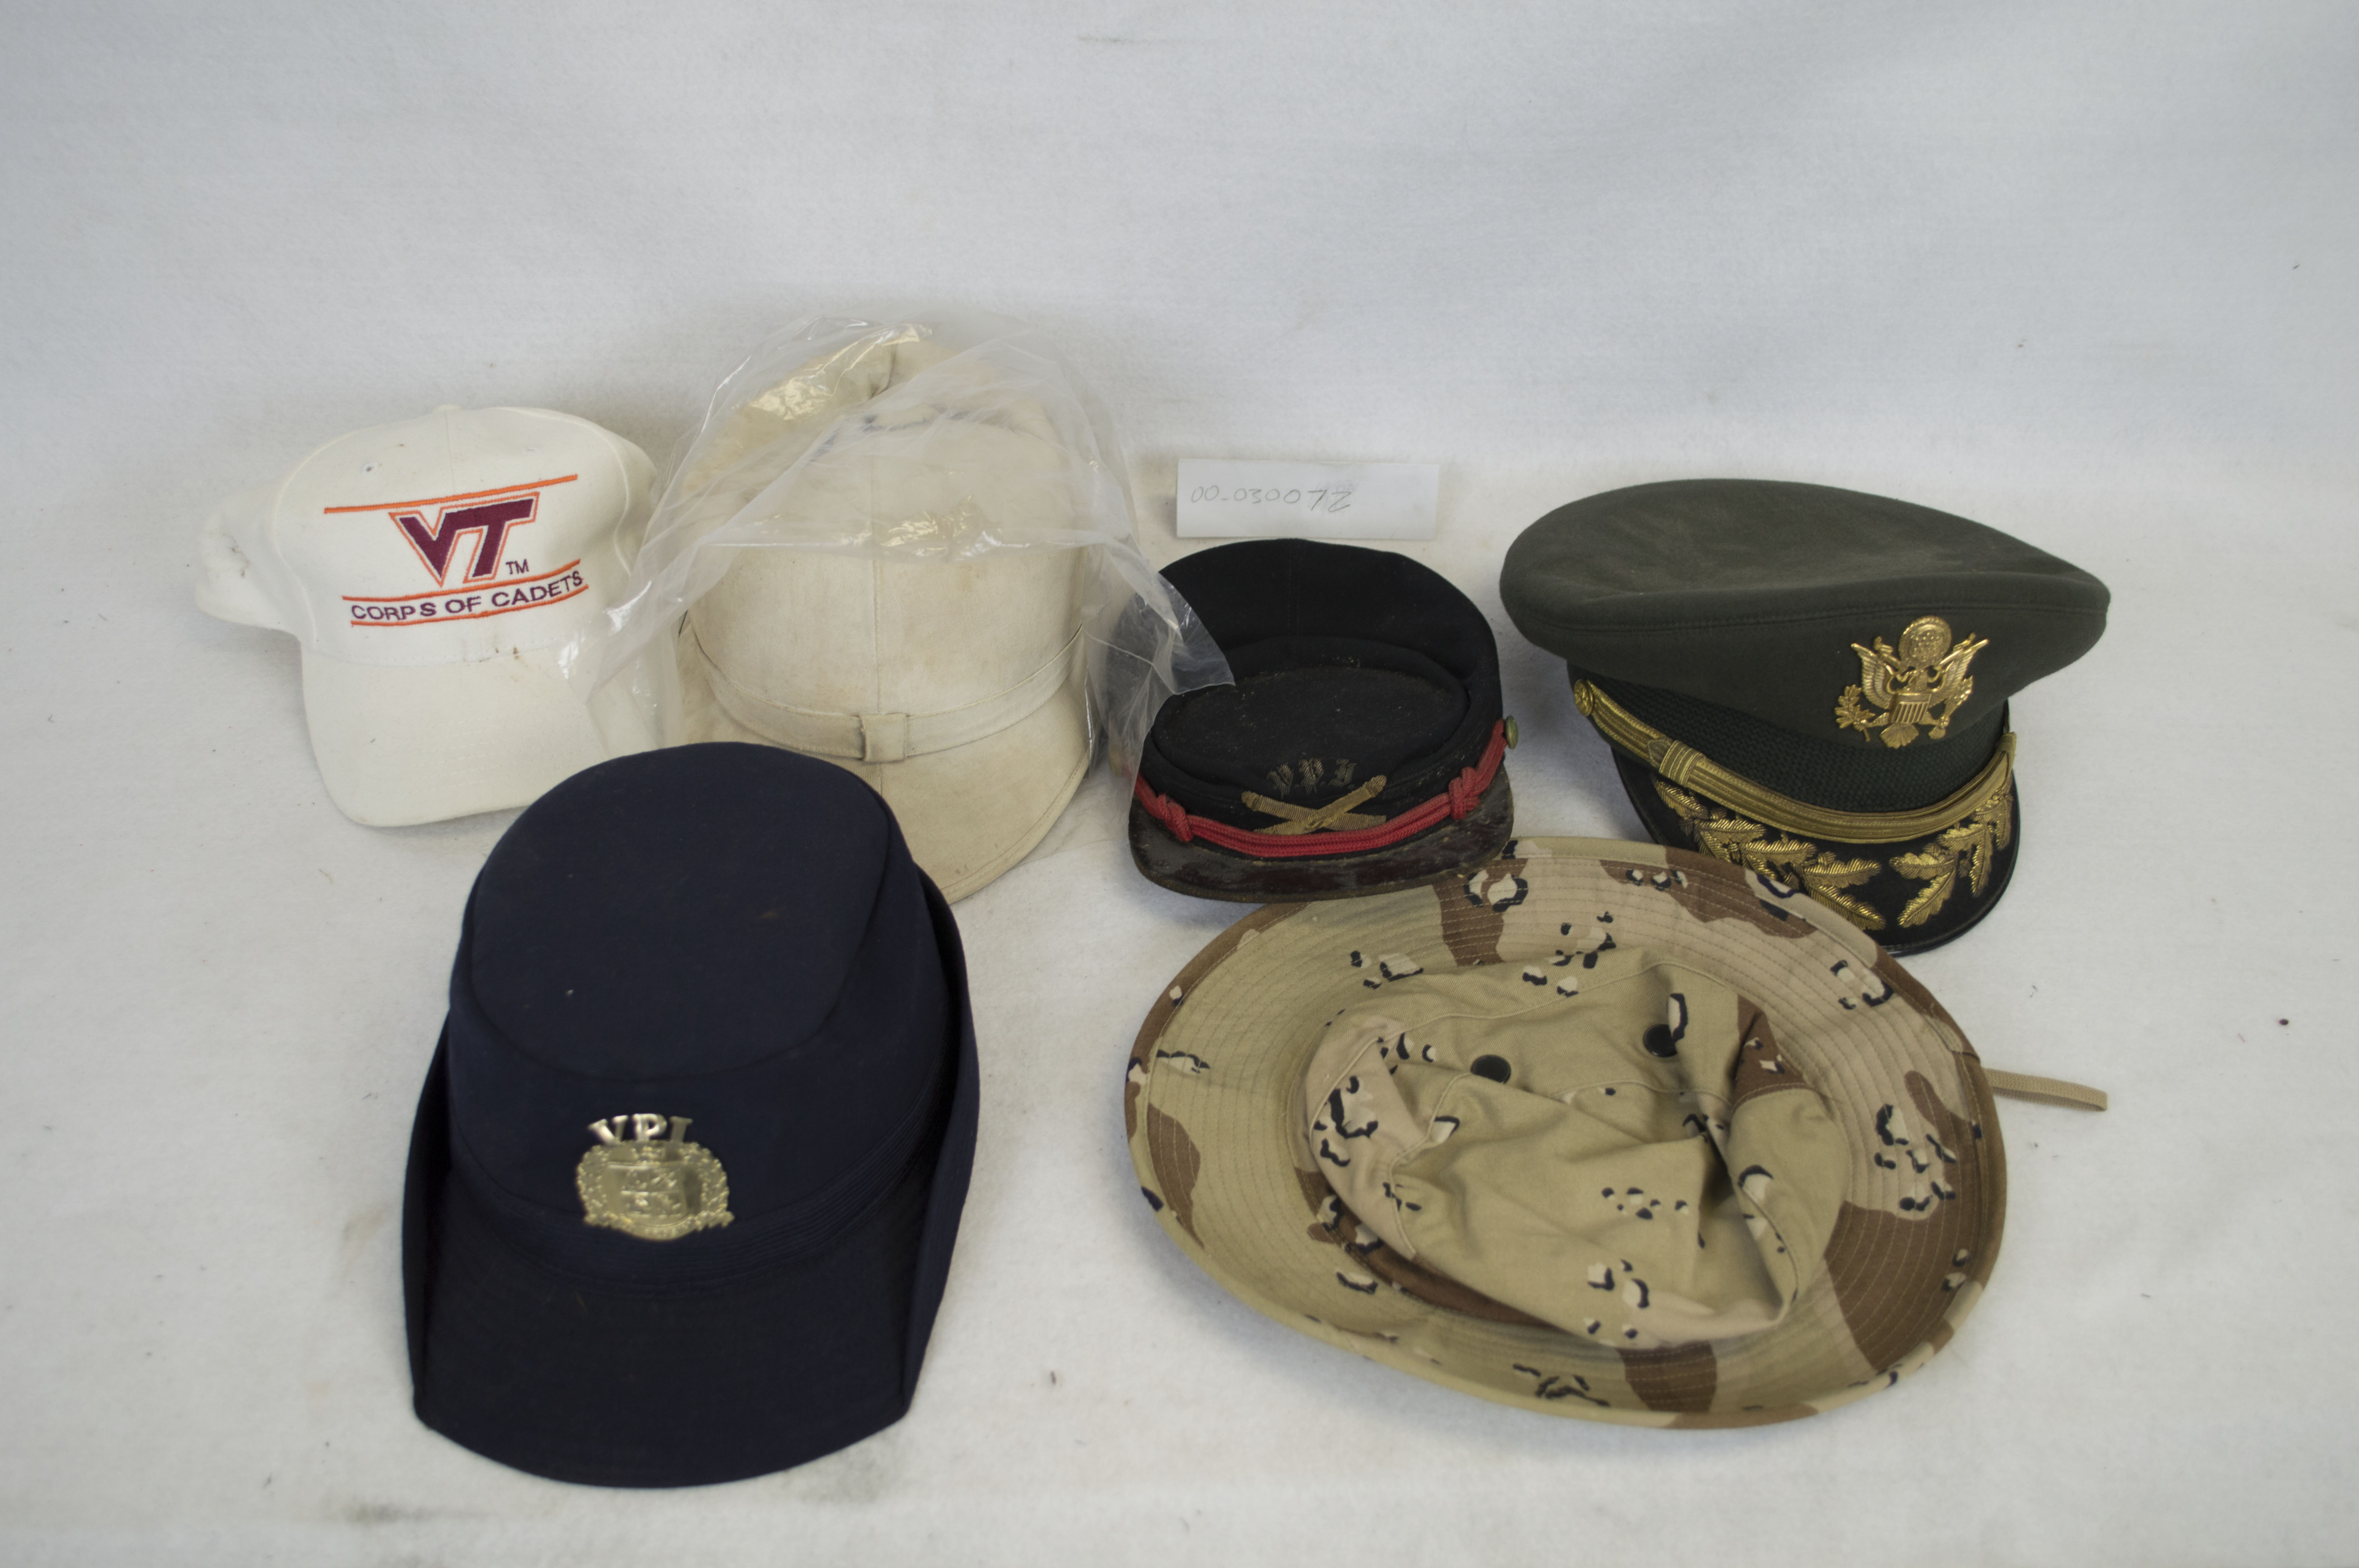 Army Cap, KepiStyle artillery cap, female blue cap, old zulu style cadet hat (Virginia Tech Corps of Cadets Museum)